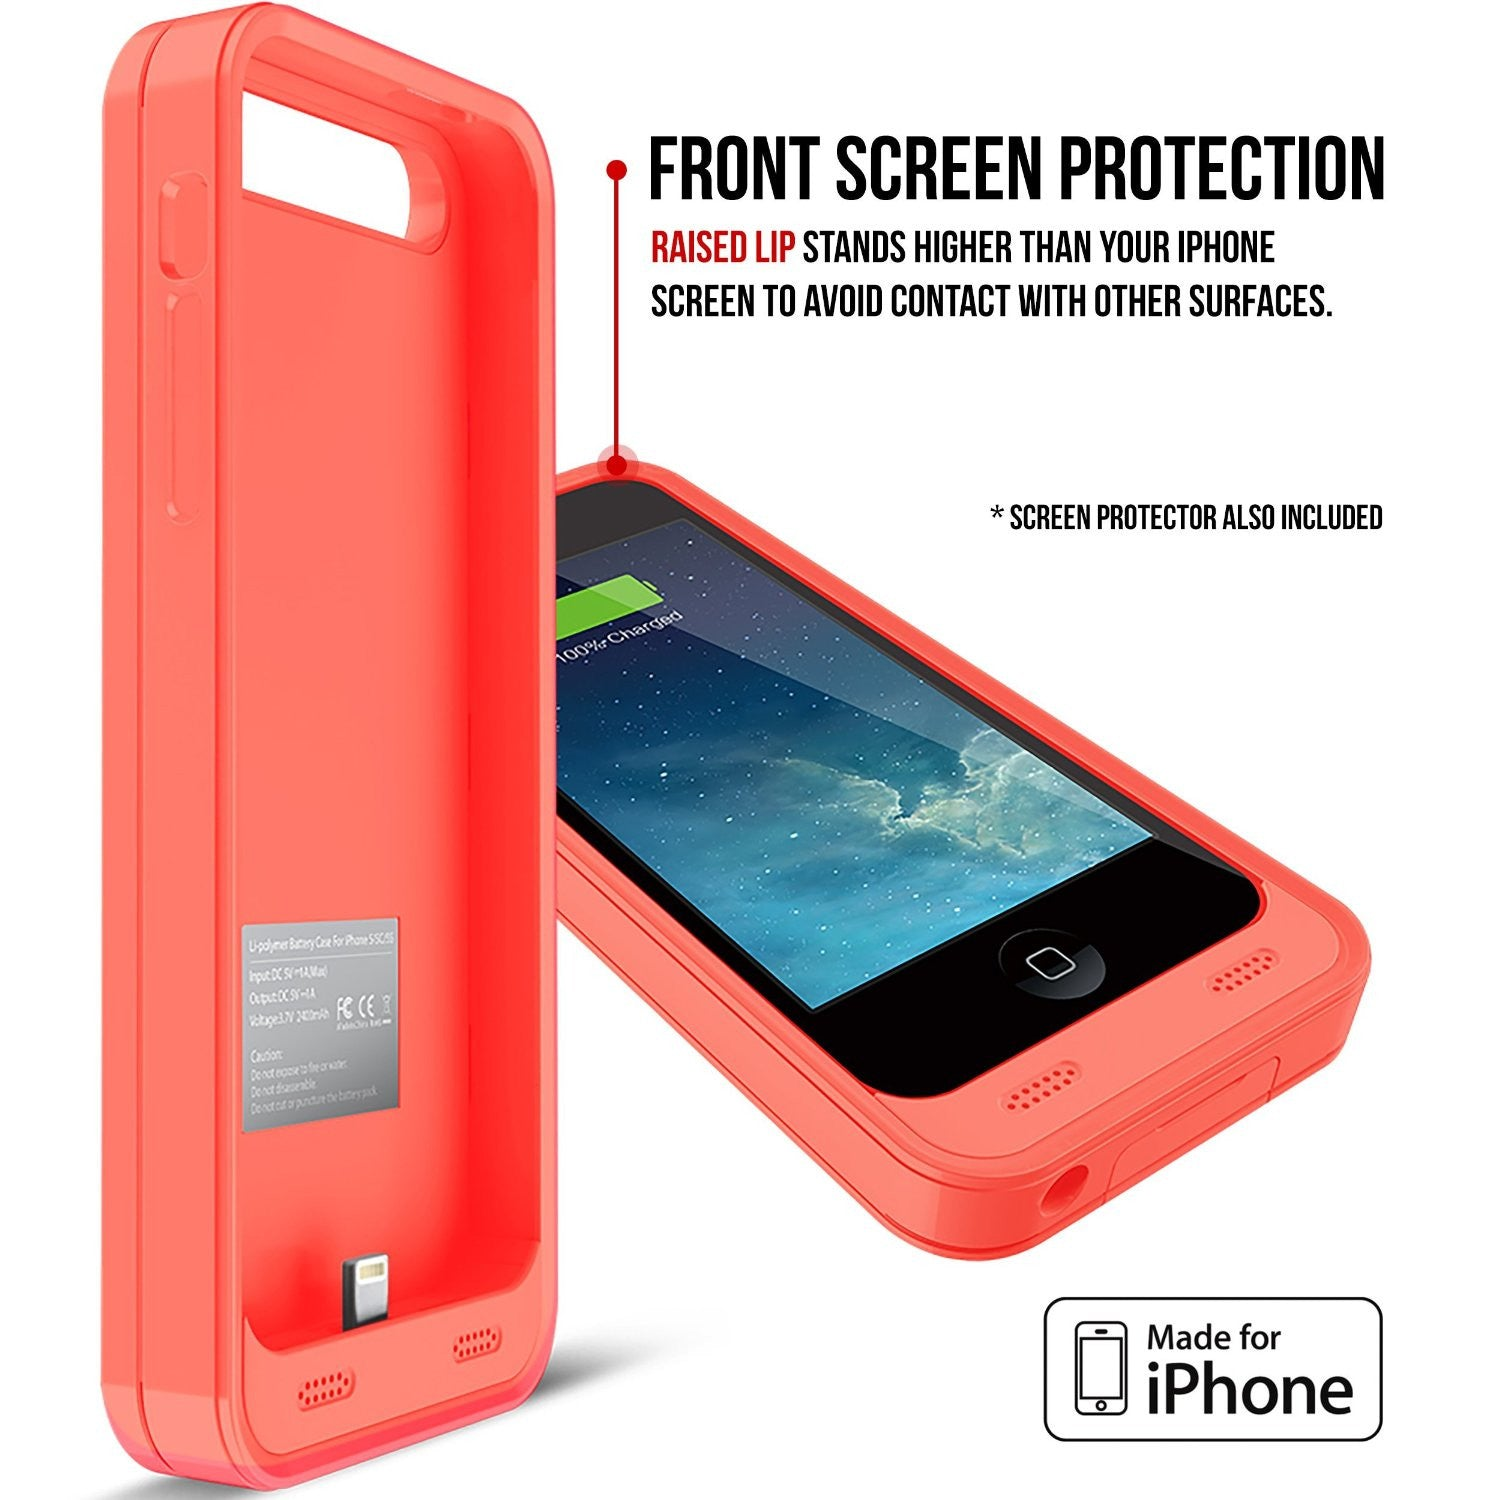 iphone 5c charging case reviews